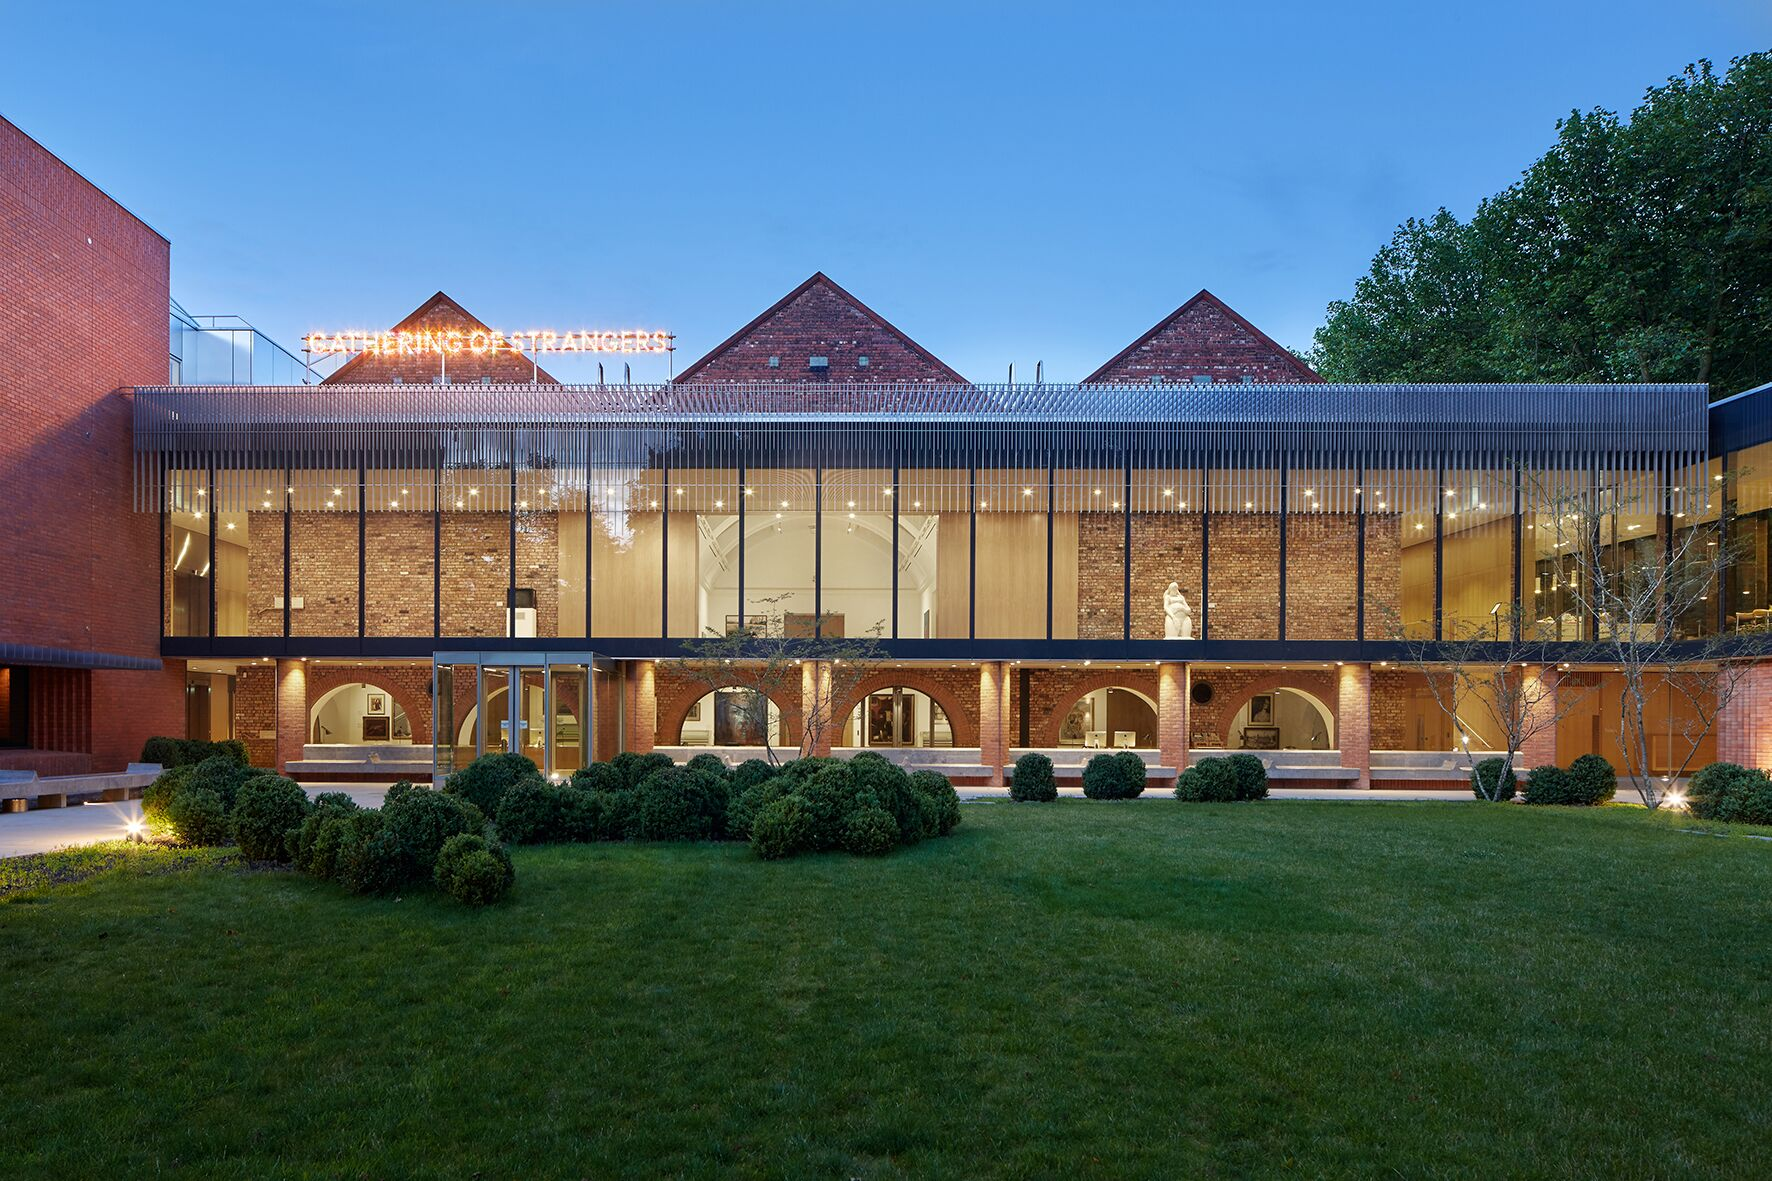 The new extension of the Whitworth museum in the evening